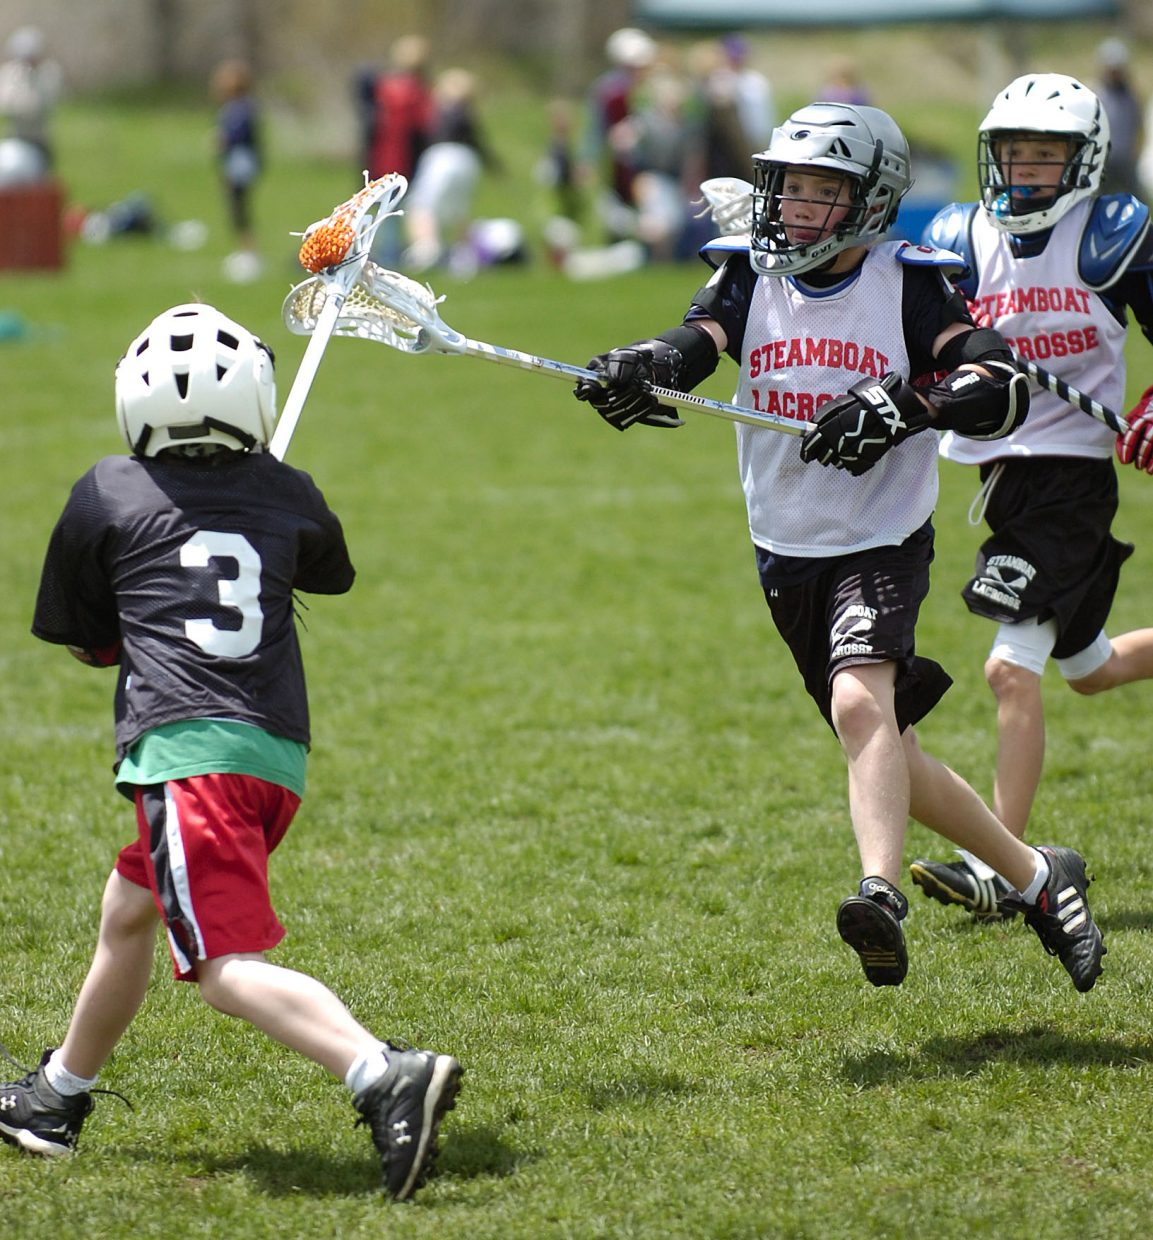 Lacrosse A Growing Game